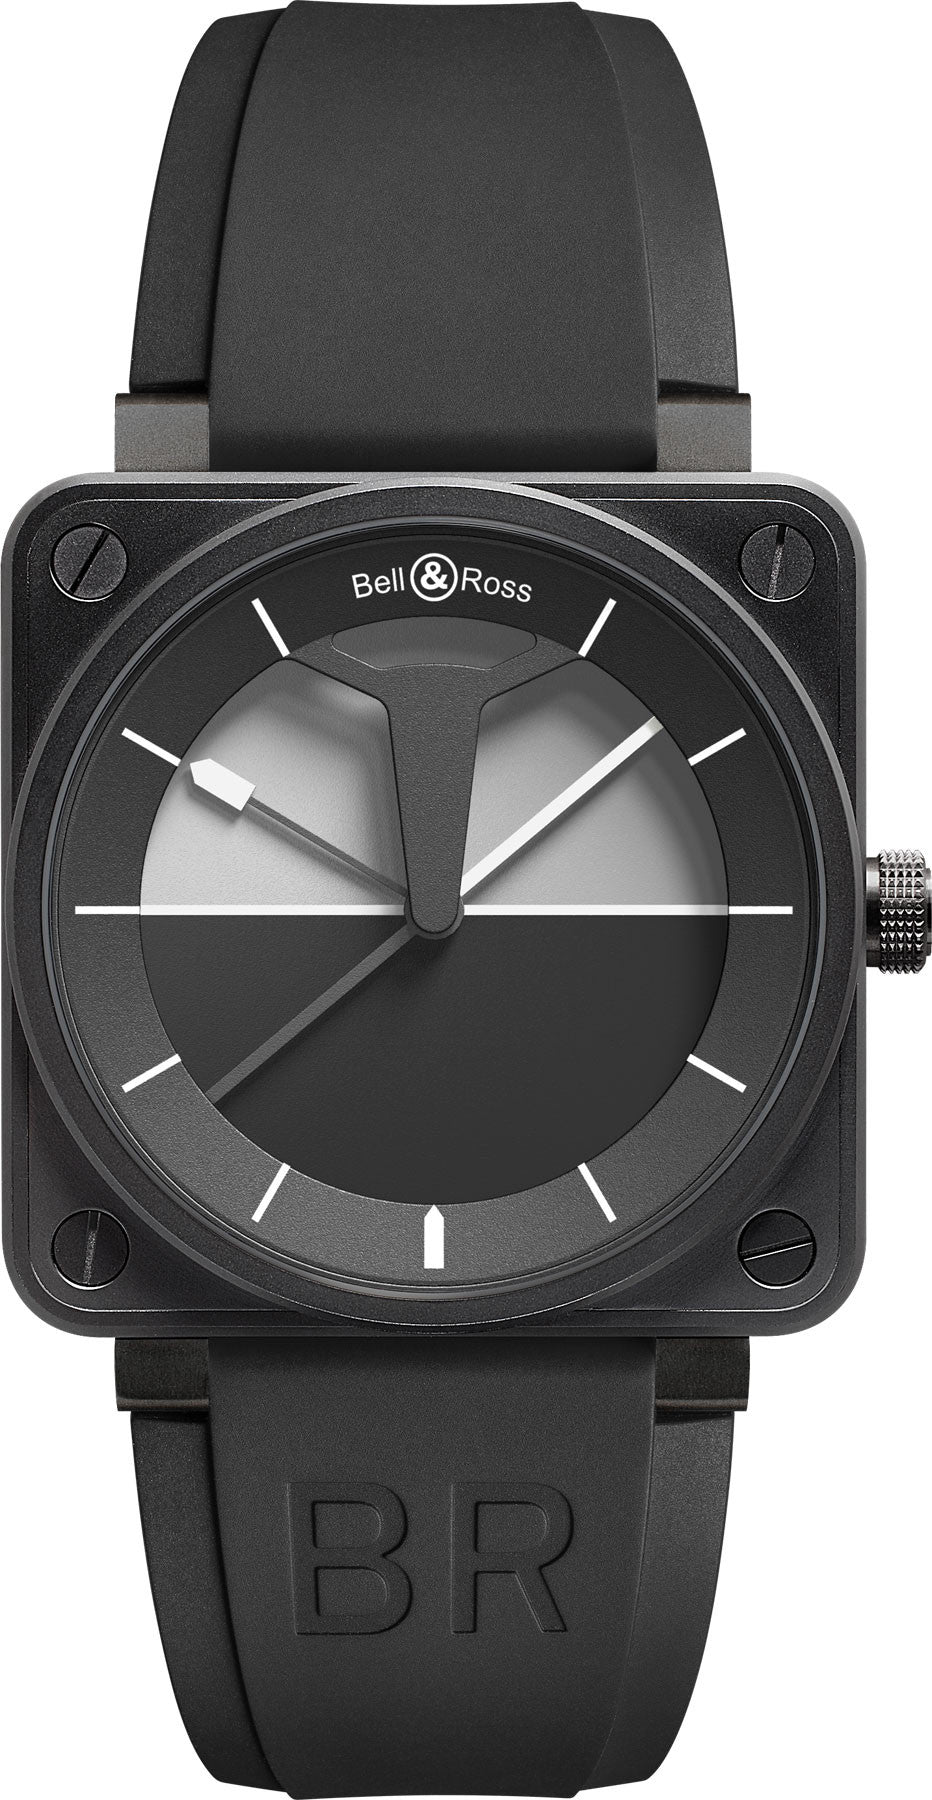 Bell & Ross Watch BR 01 92 Horizon Limited Edition